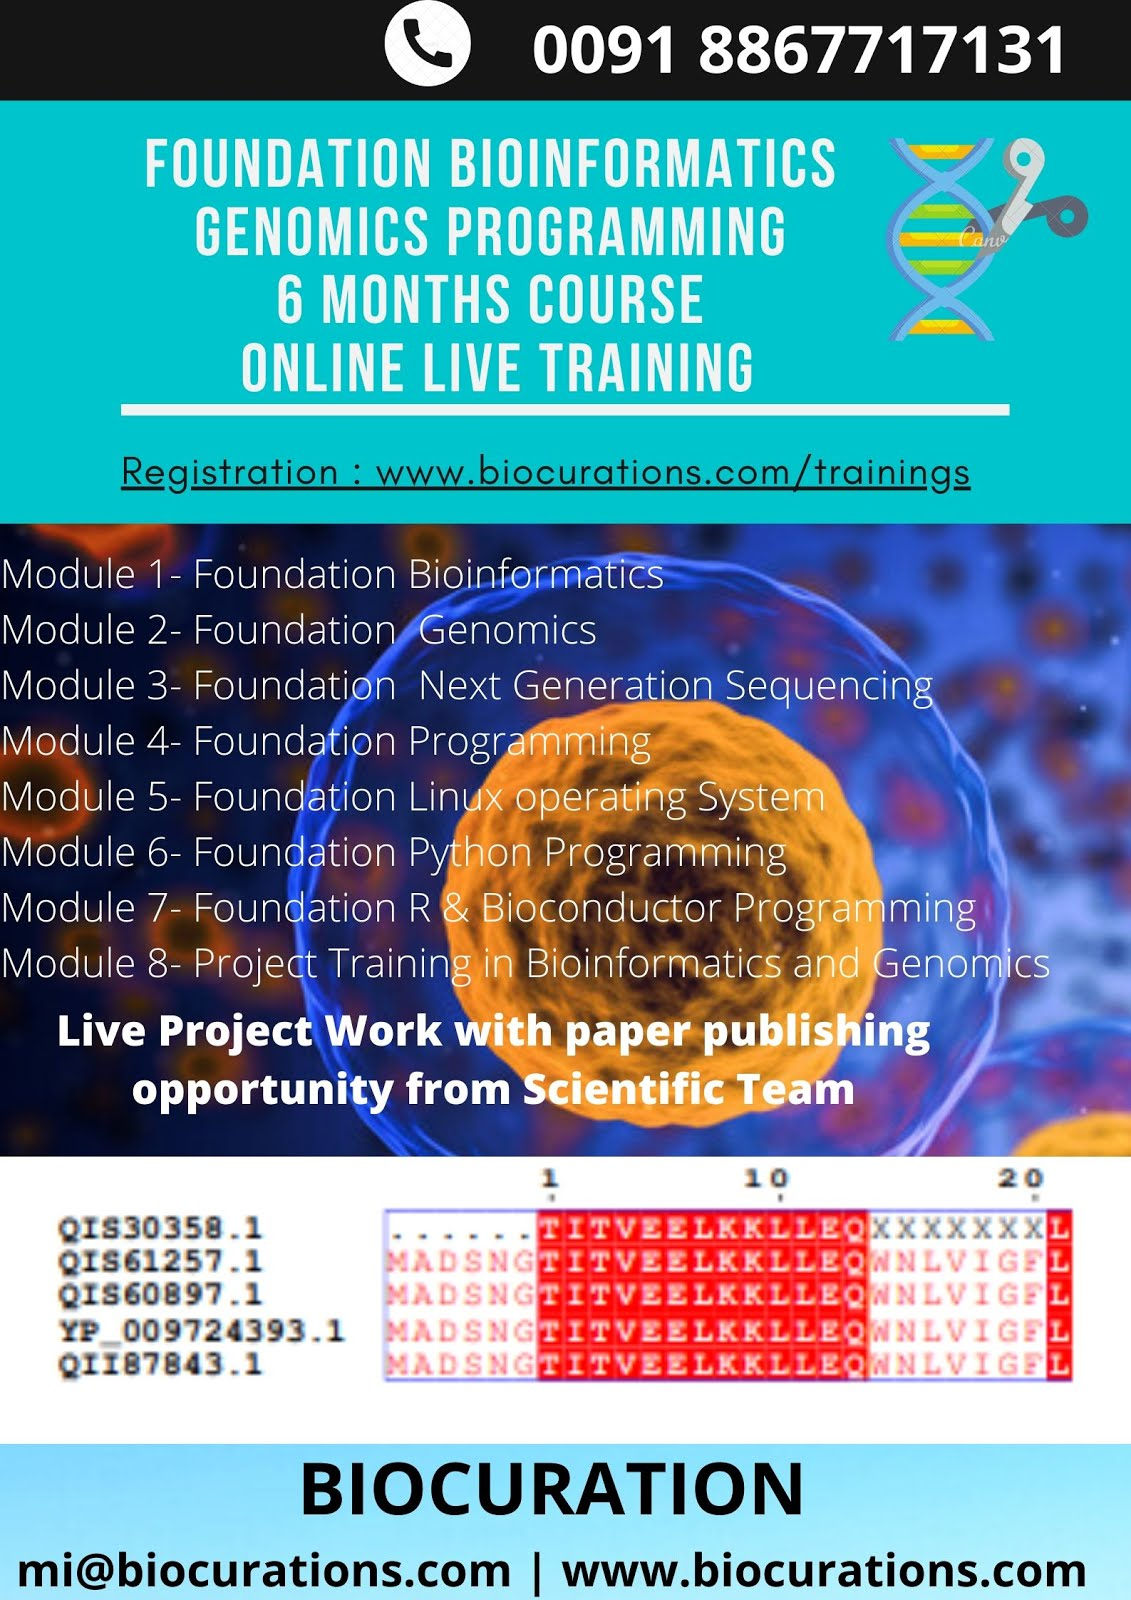 Foundation Bioinformatics